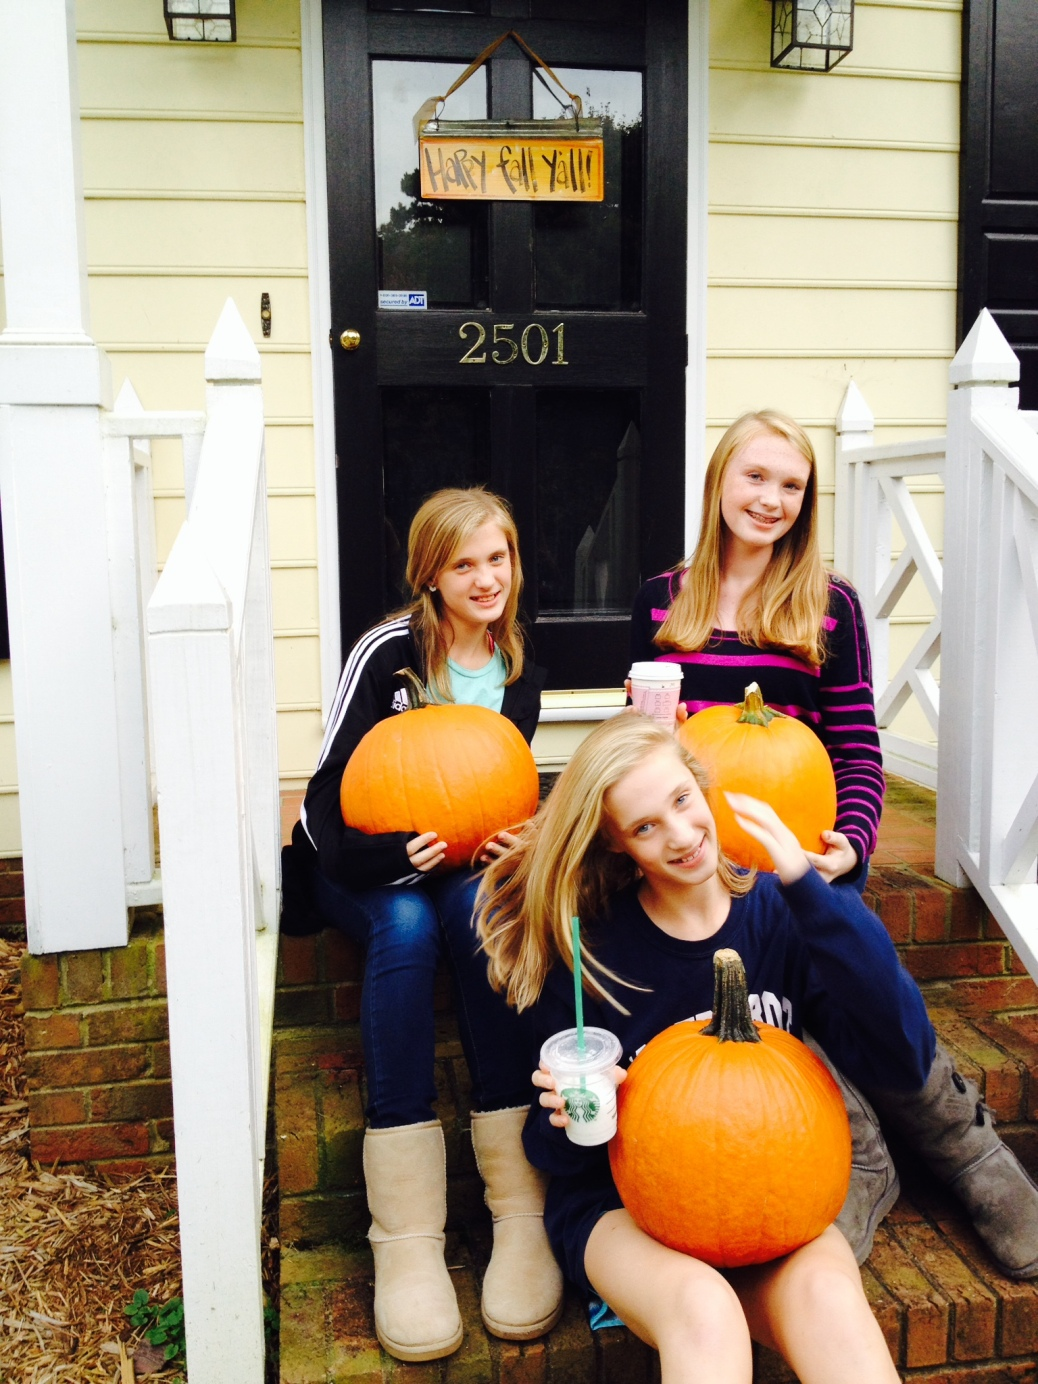 3 adorable punkins - and 3 perfect pumpkins.